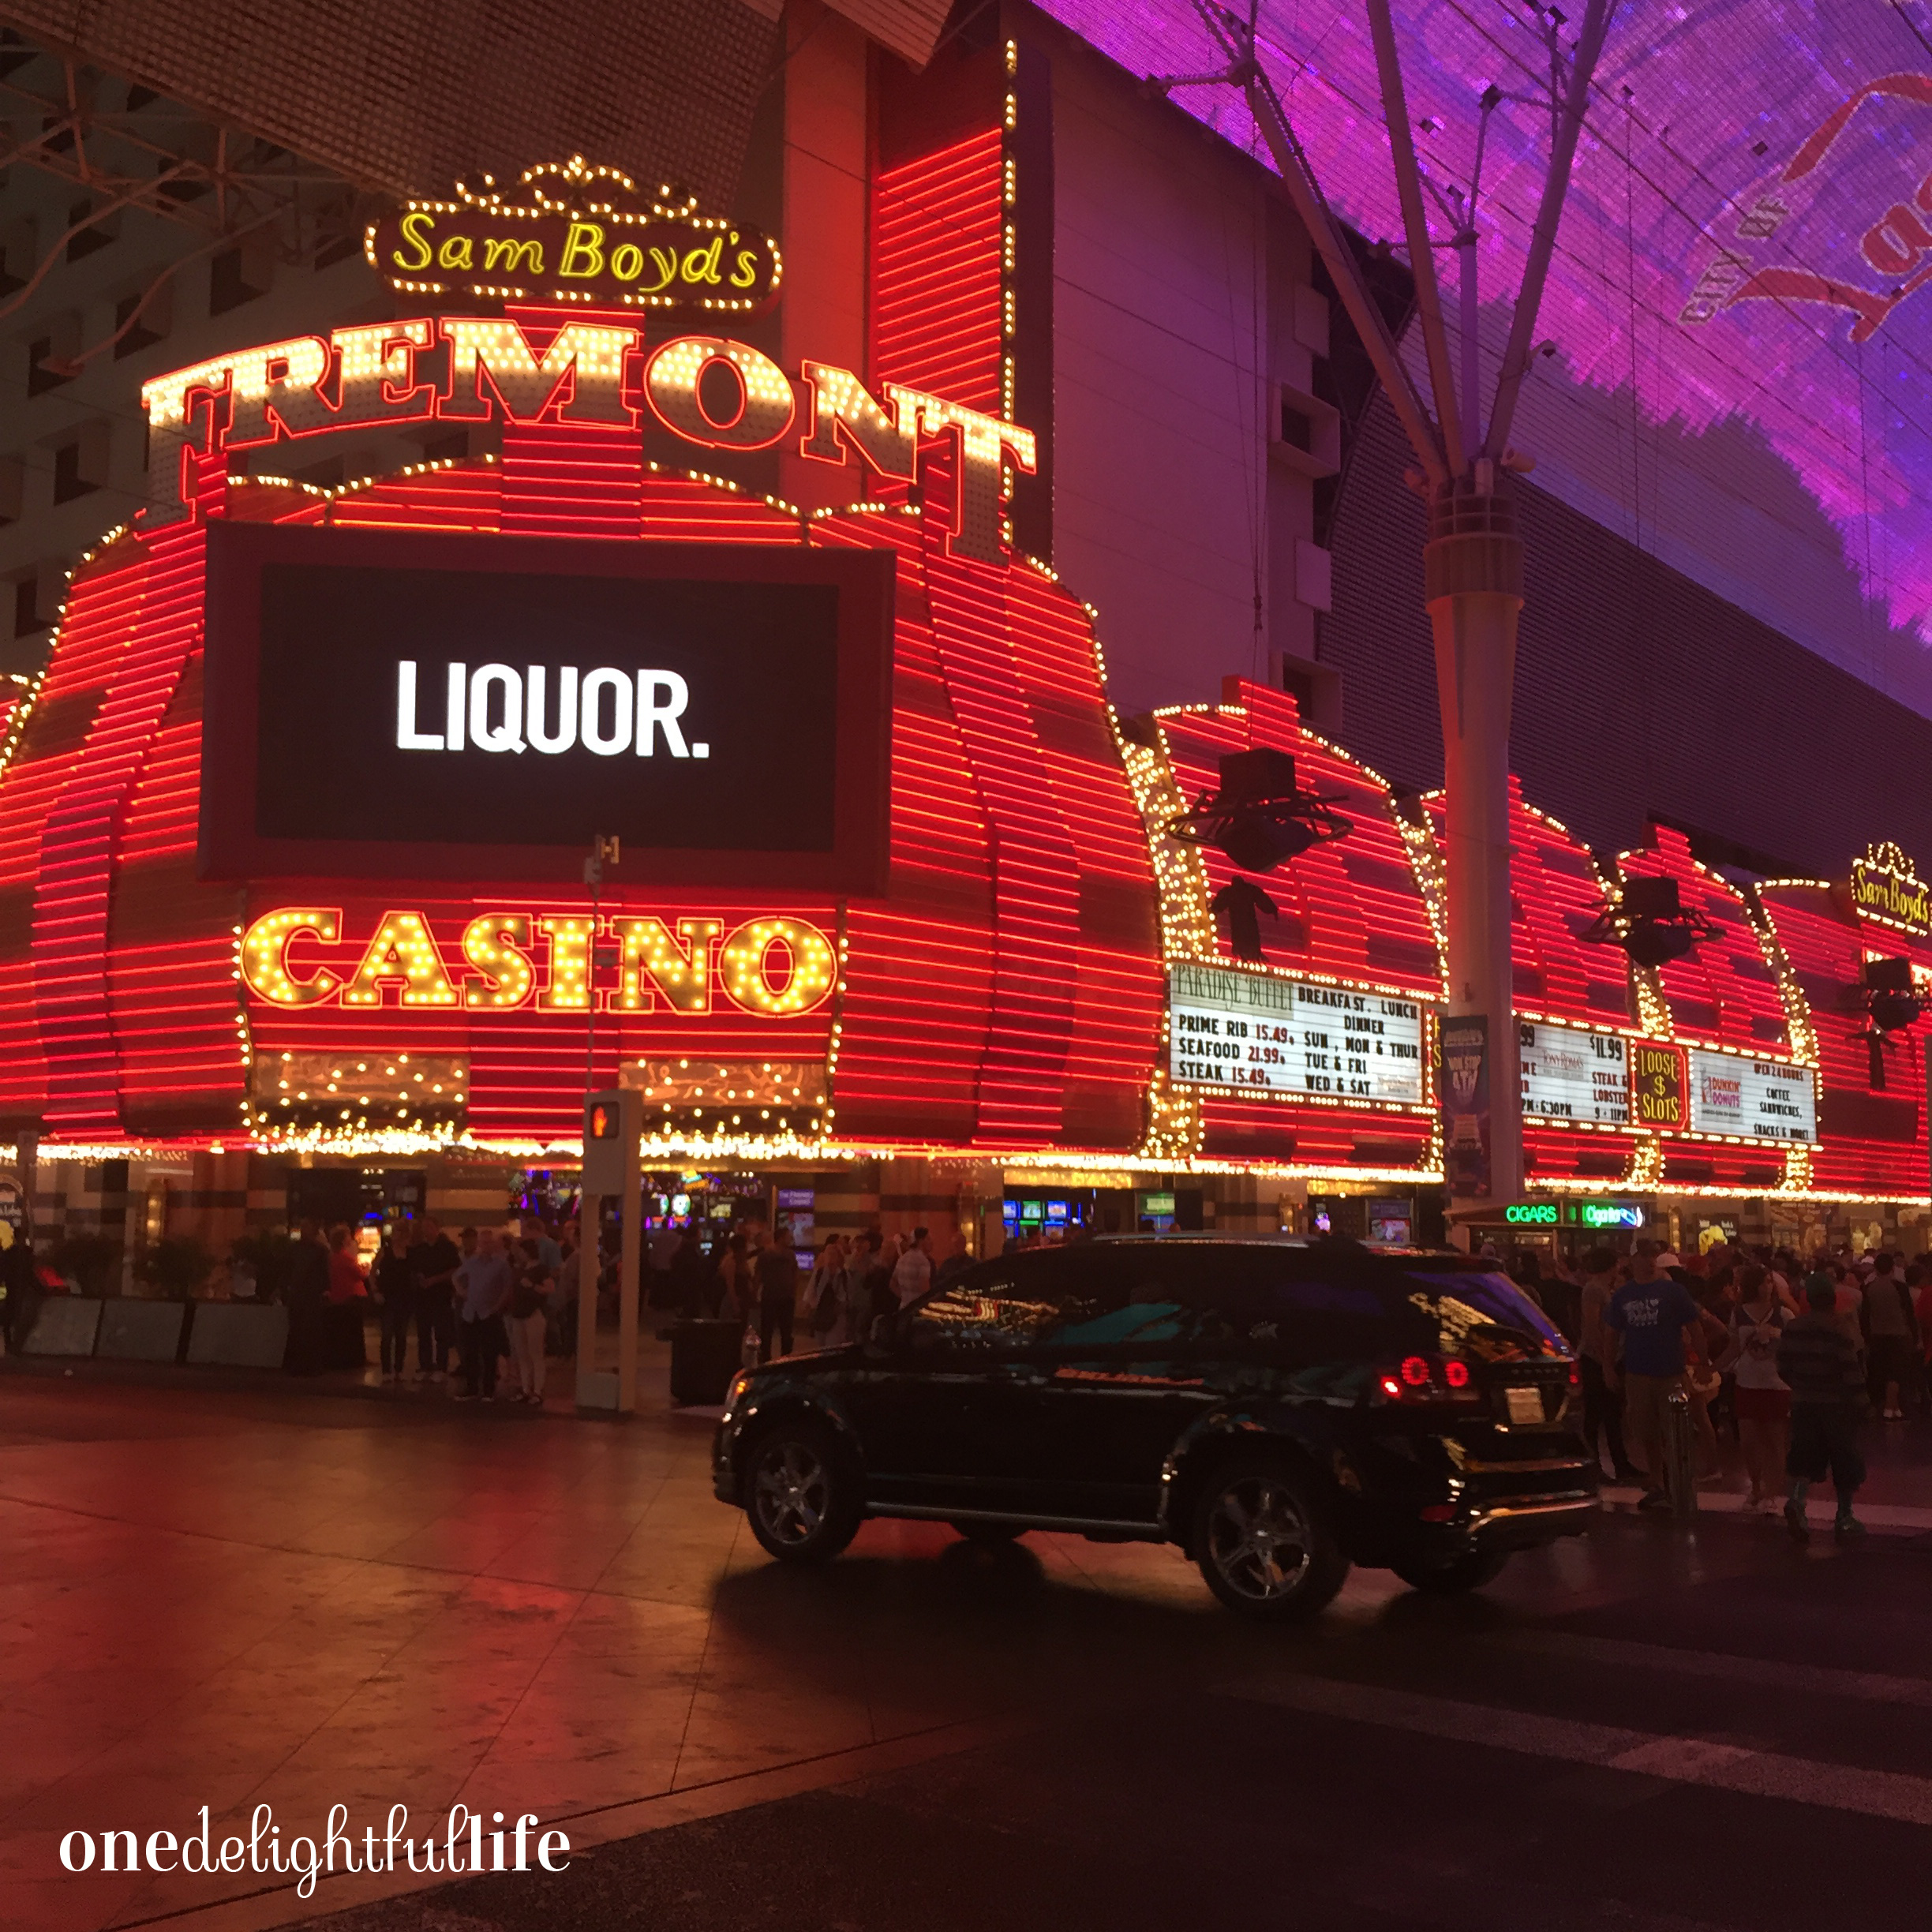 Head to Old Vegas (Freemont Street) to enjoy cheaper bar drinks and easy access to gambling tables. This LED sign seems to sum up Vegas pretty well, don't ya think?